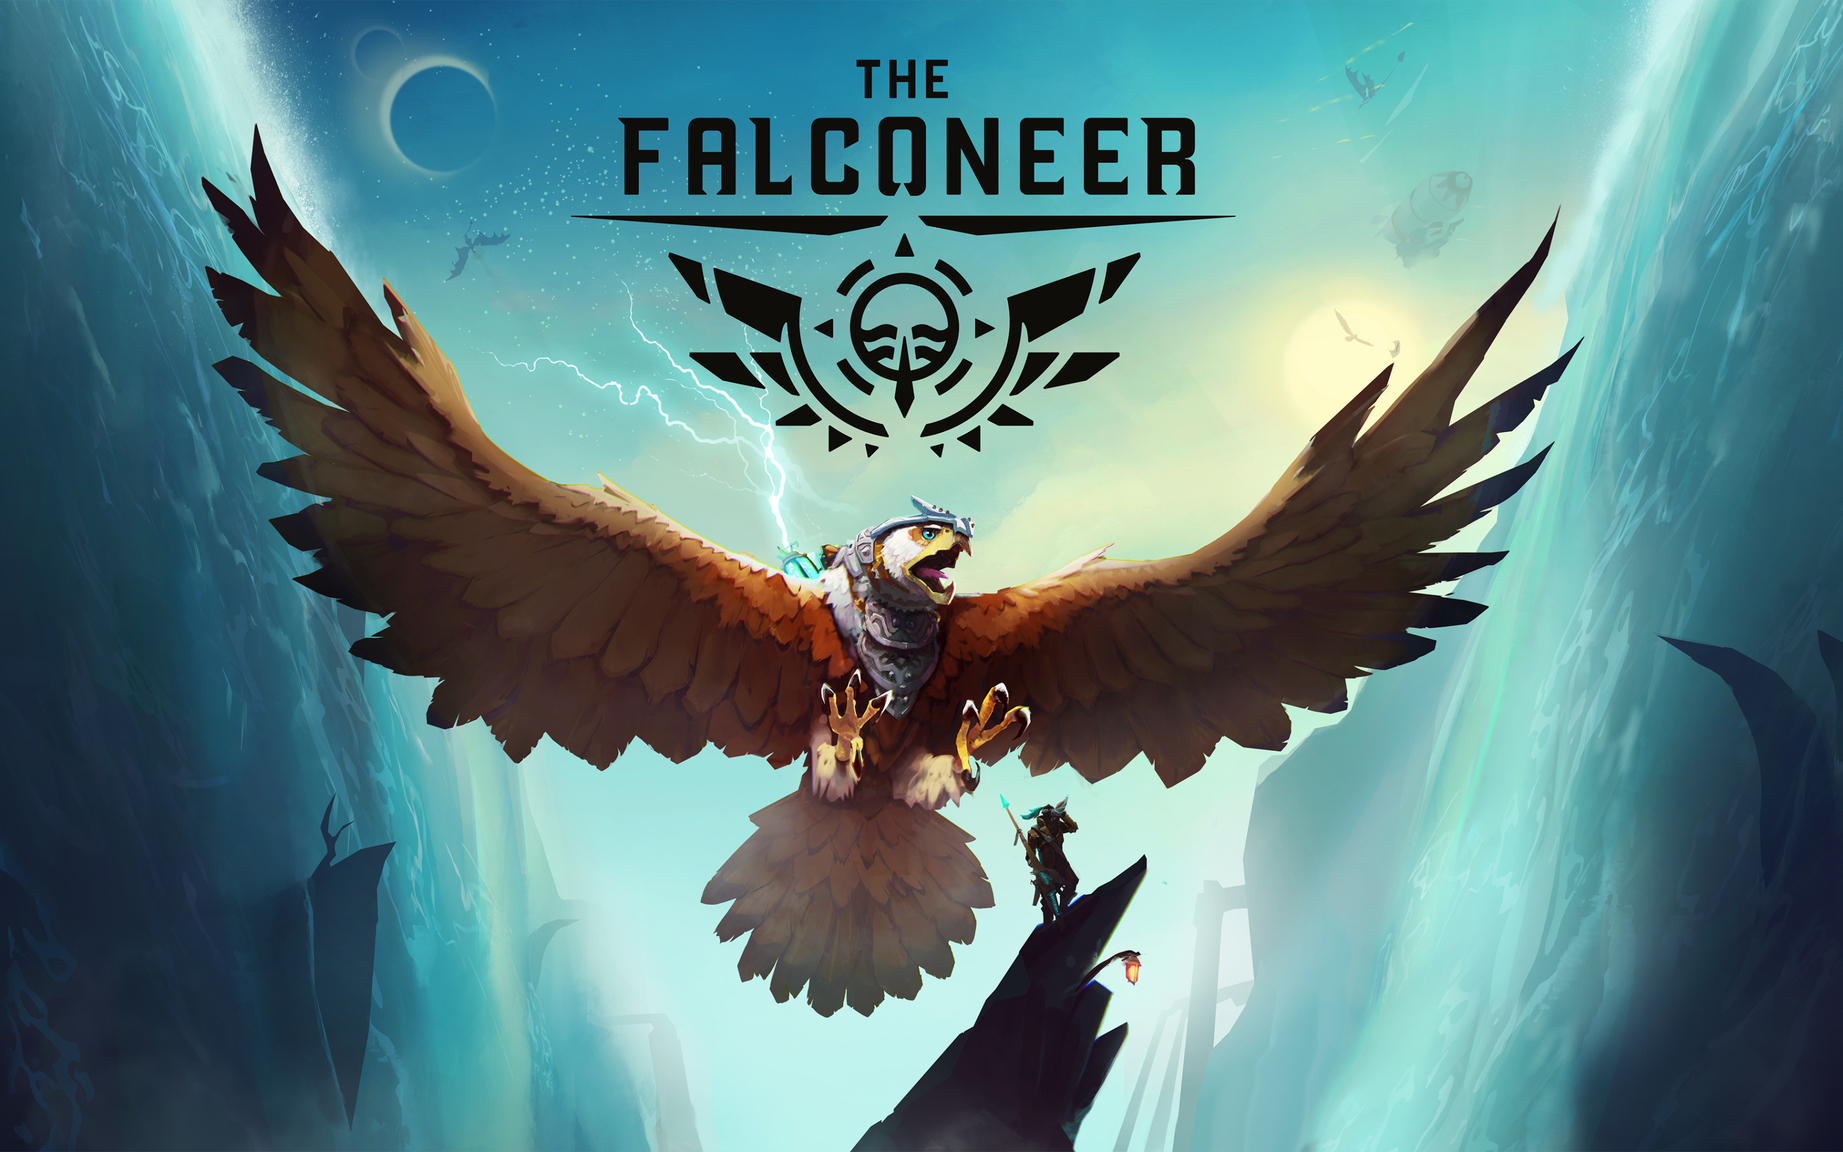 'The Falconeer' will be an Xbox Series X launch title